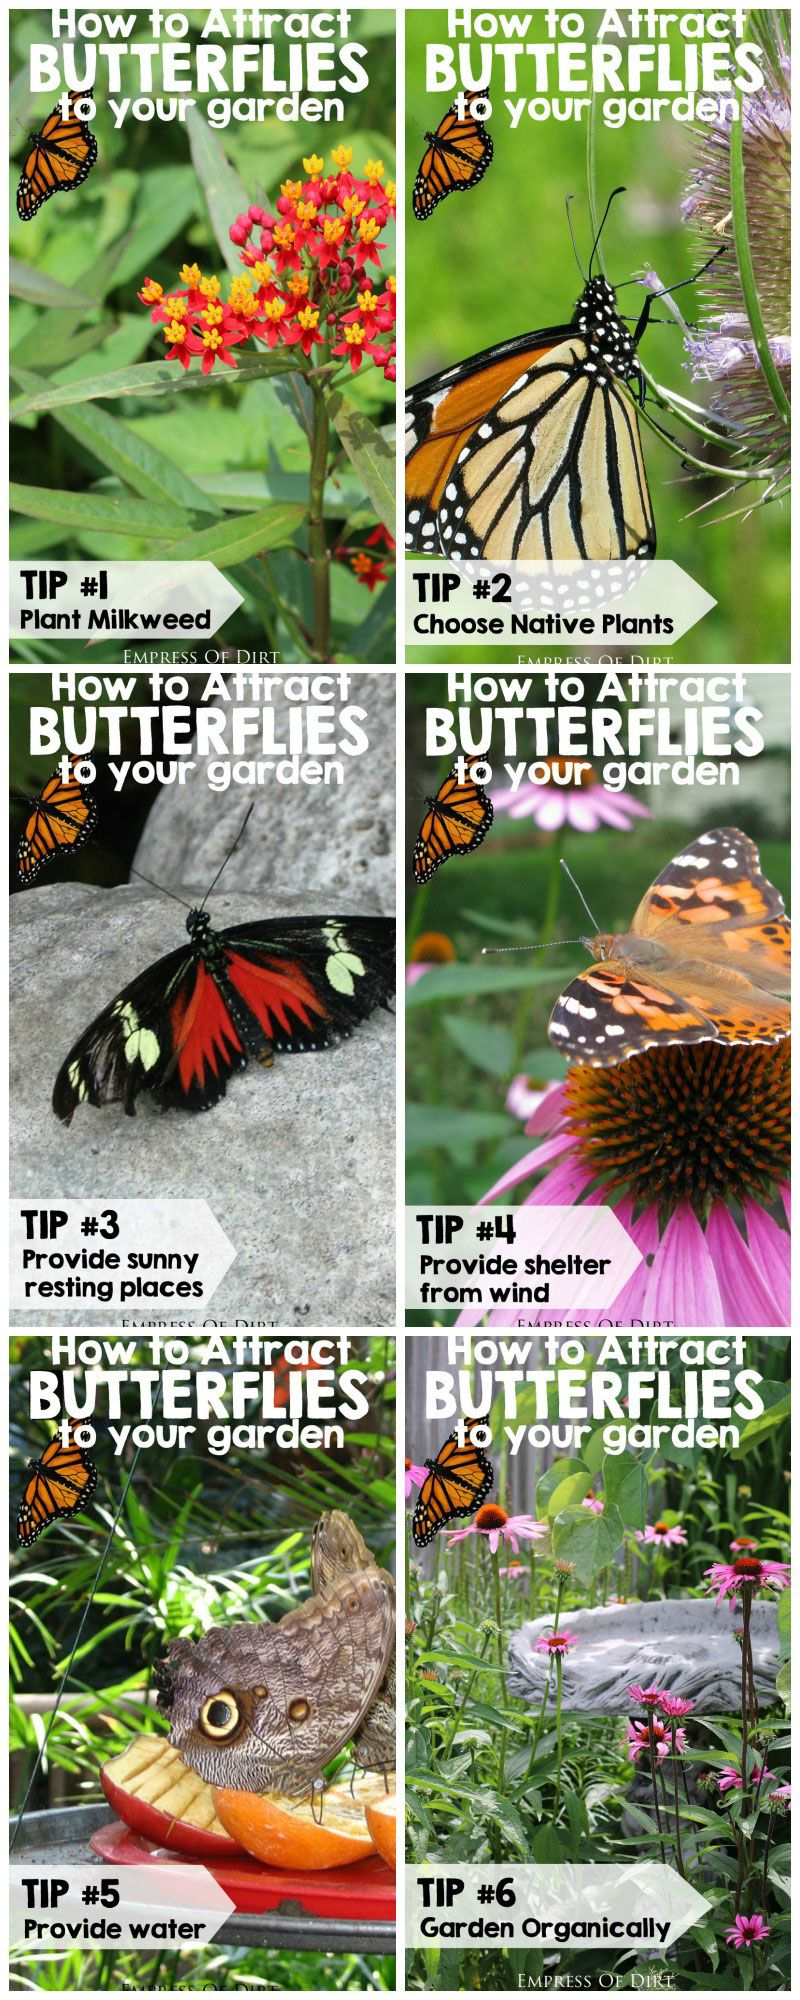 7 Important Tips For Attracting Butterflies To Your Garden Plus Ways To  Help Conserve The Monarch